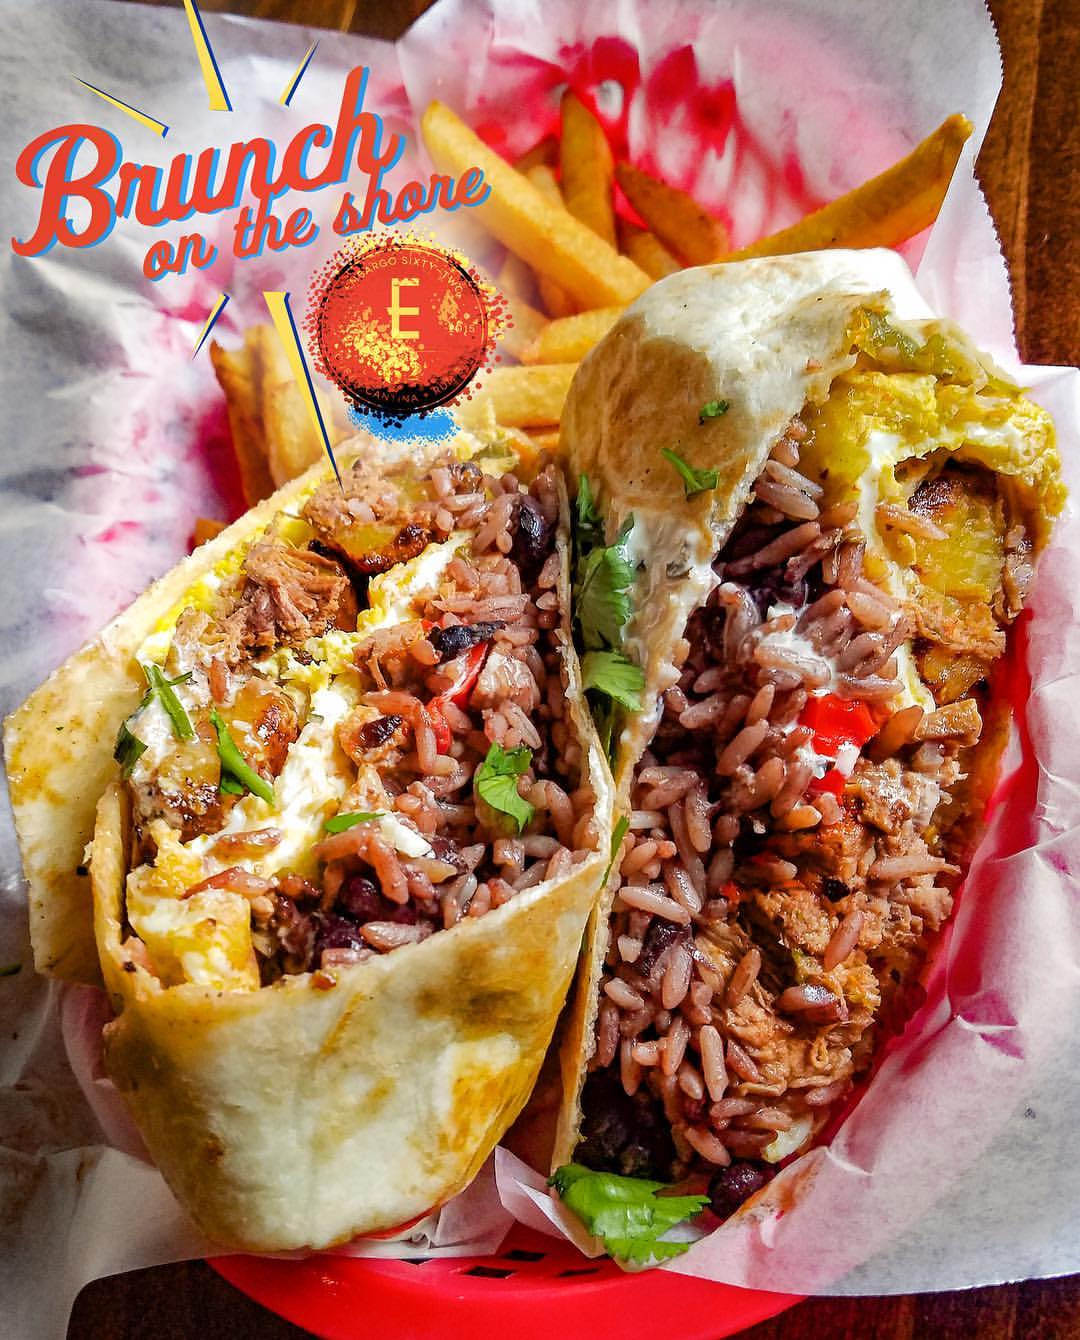 Embargo '62 Brunch Burrito. Fried Eggs, Congri (rice and beans mix), Sweet Plantains, Ropa Vieja (shredded beef), Mayonesa de cilantro, Potato Sticks in a Flour Tortilla.